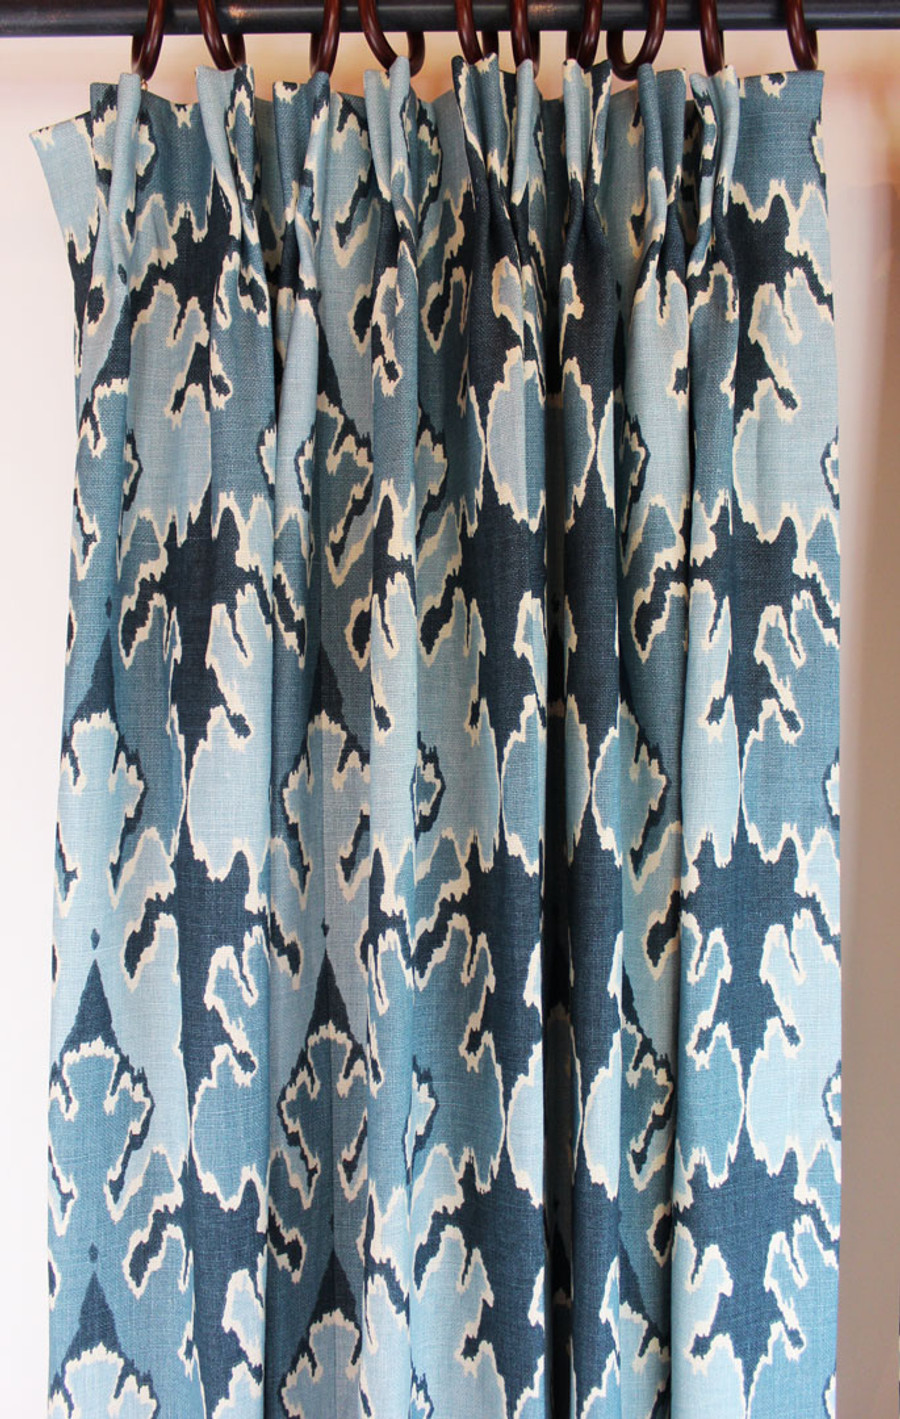 Custom Pleated Drapes by Lynn Chalk in Kelly Wearstler Bengal Bazaar in Teal